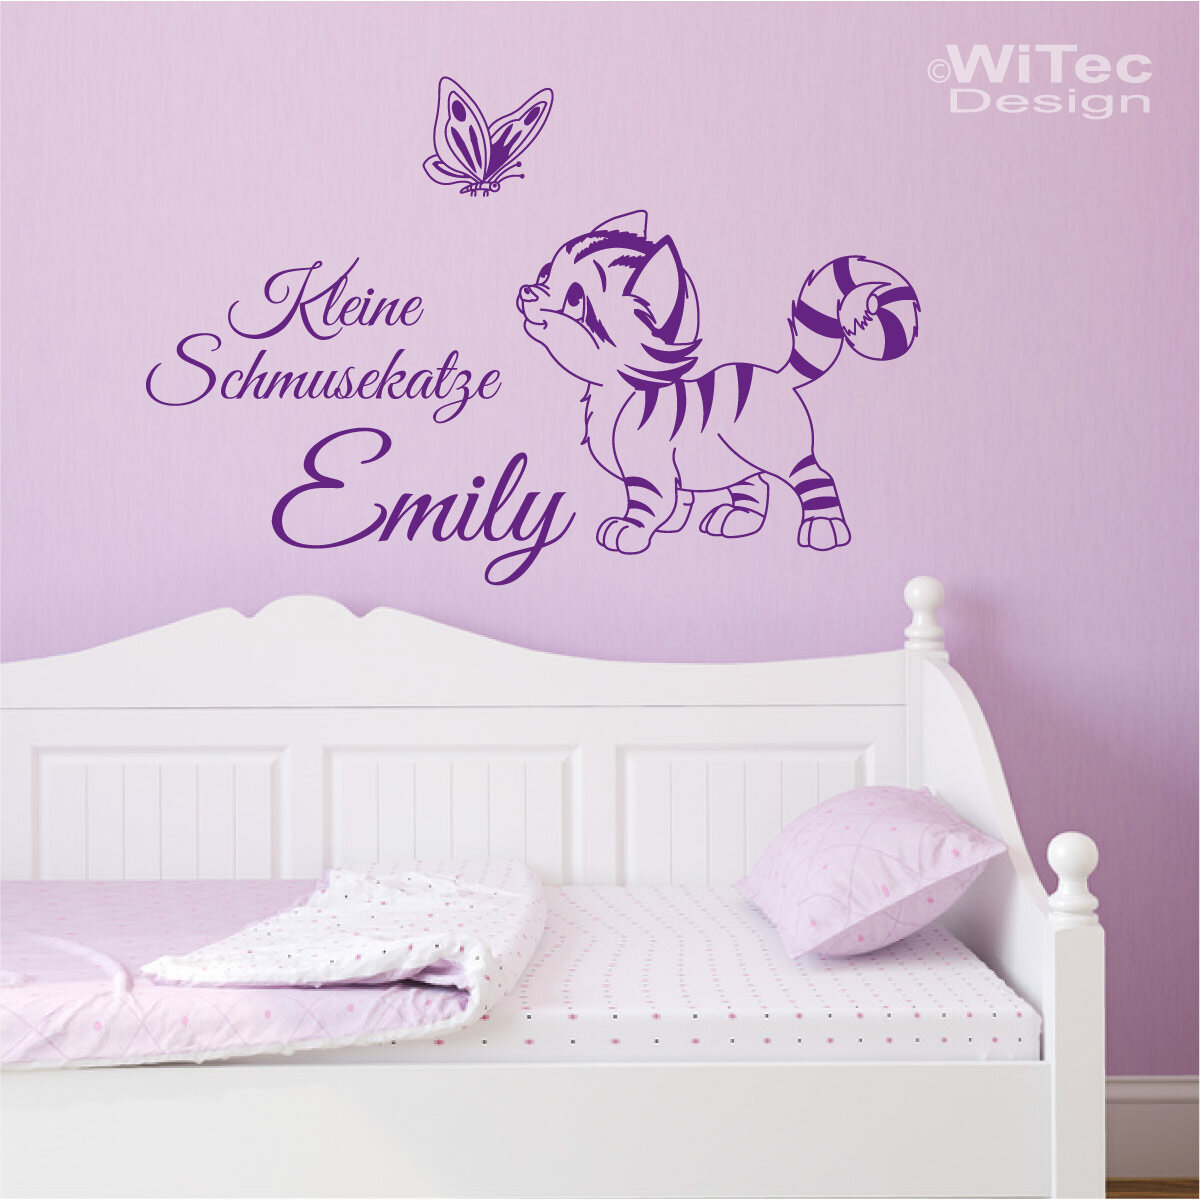 wandtattoo kinderzimmer katze schmetterling name wandaufkleber. Black Bedroom Furniture Sets. Home Design Ideas